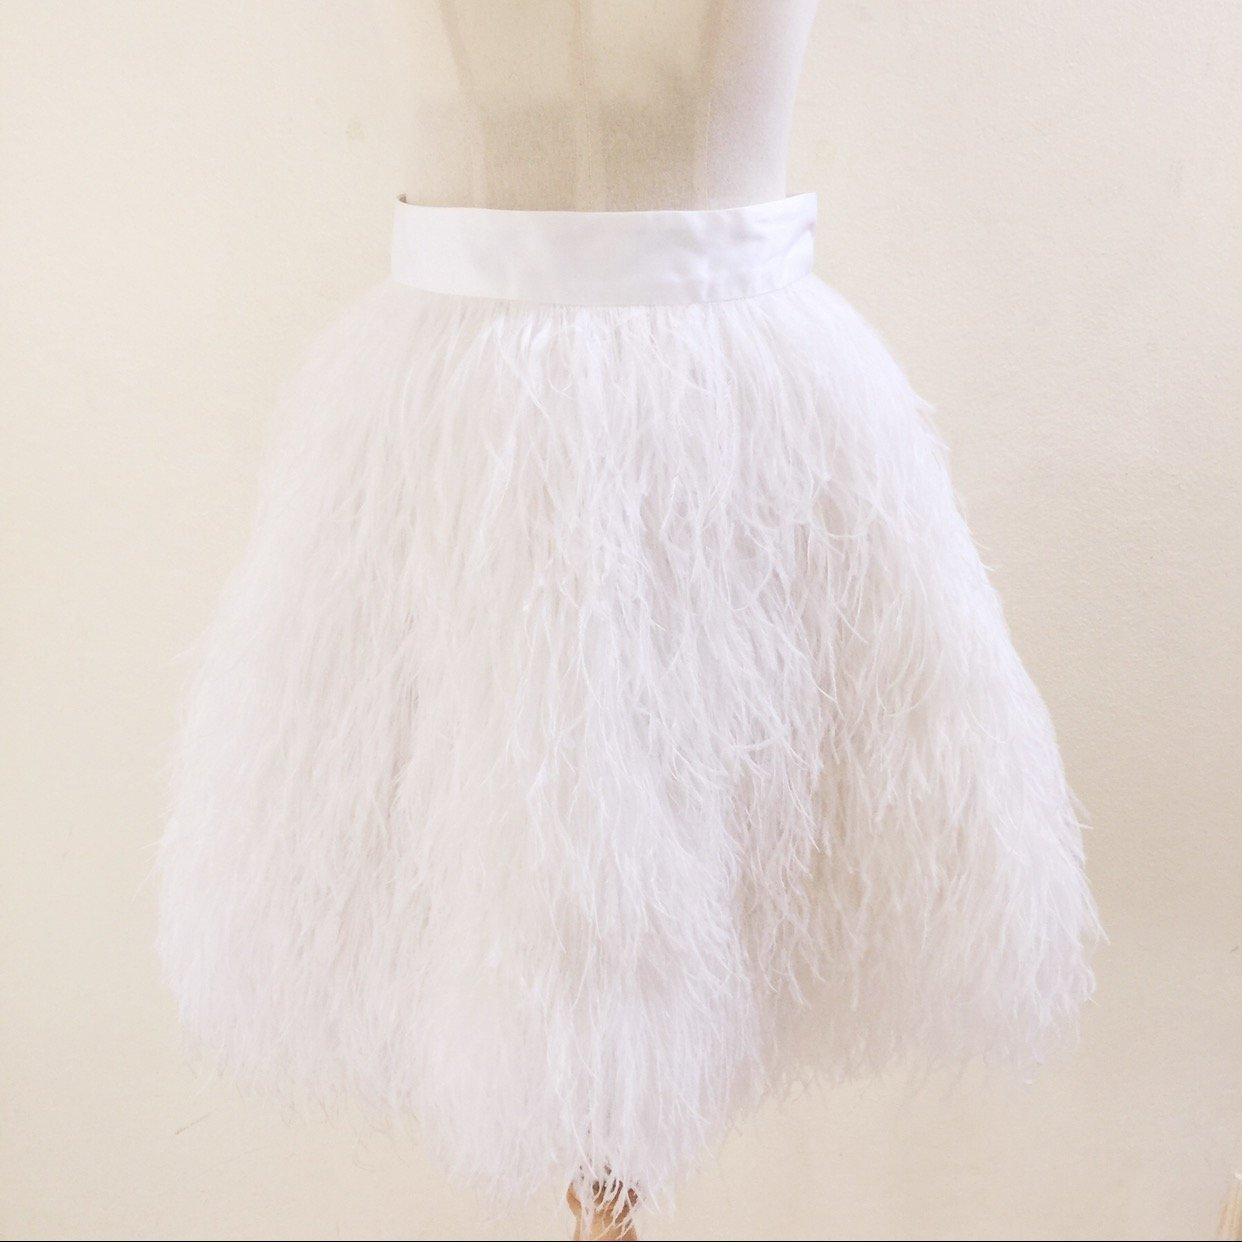 S.G.instar Rachael ostrich feathers skirt Wedding skirt bride maid skirt